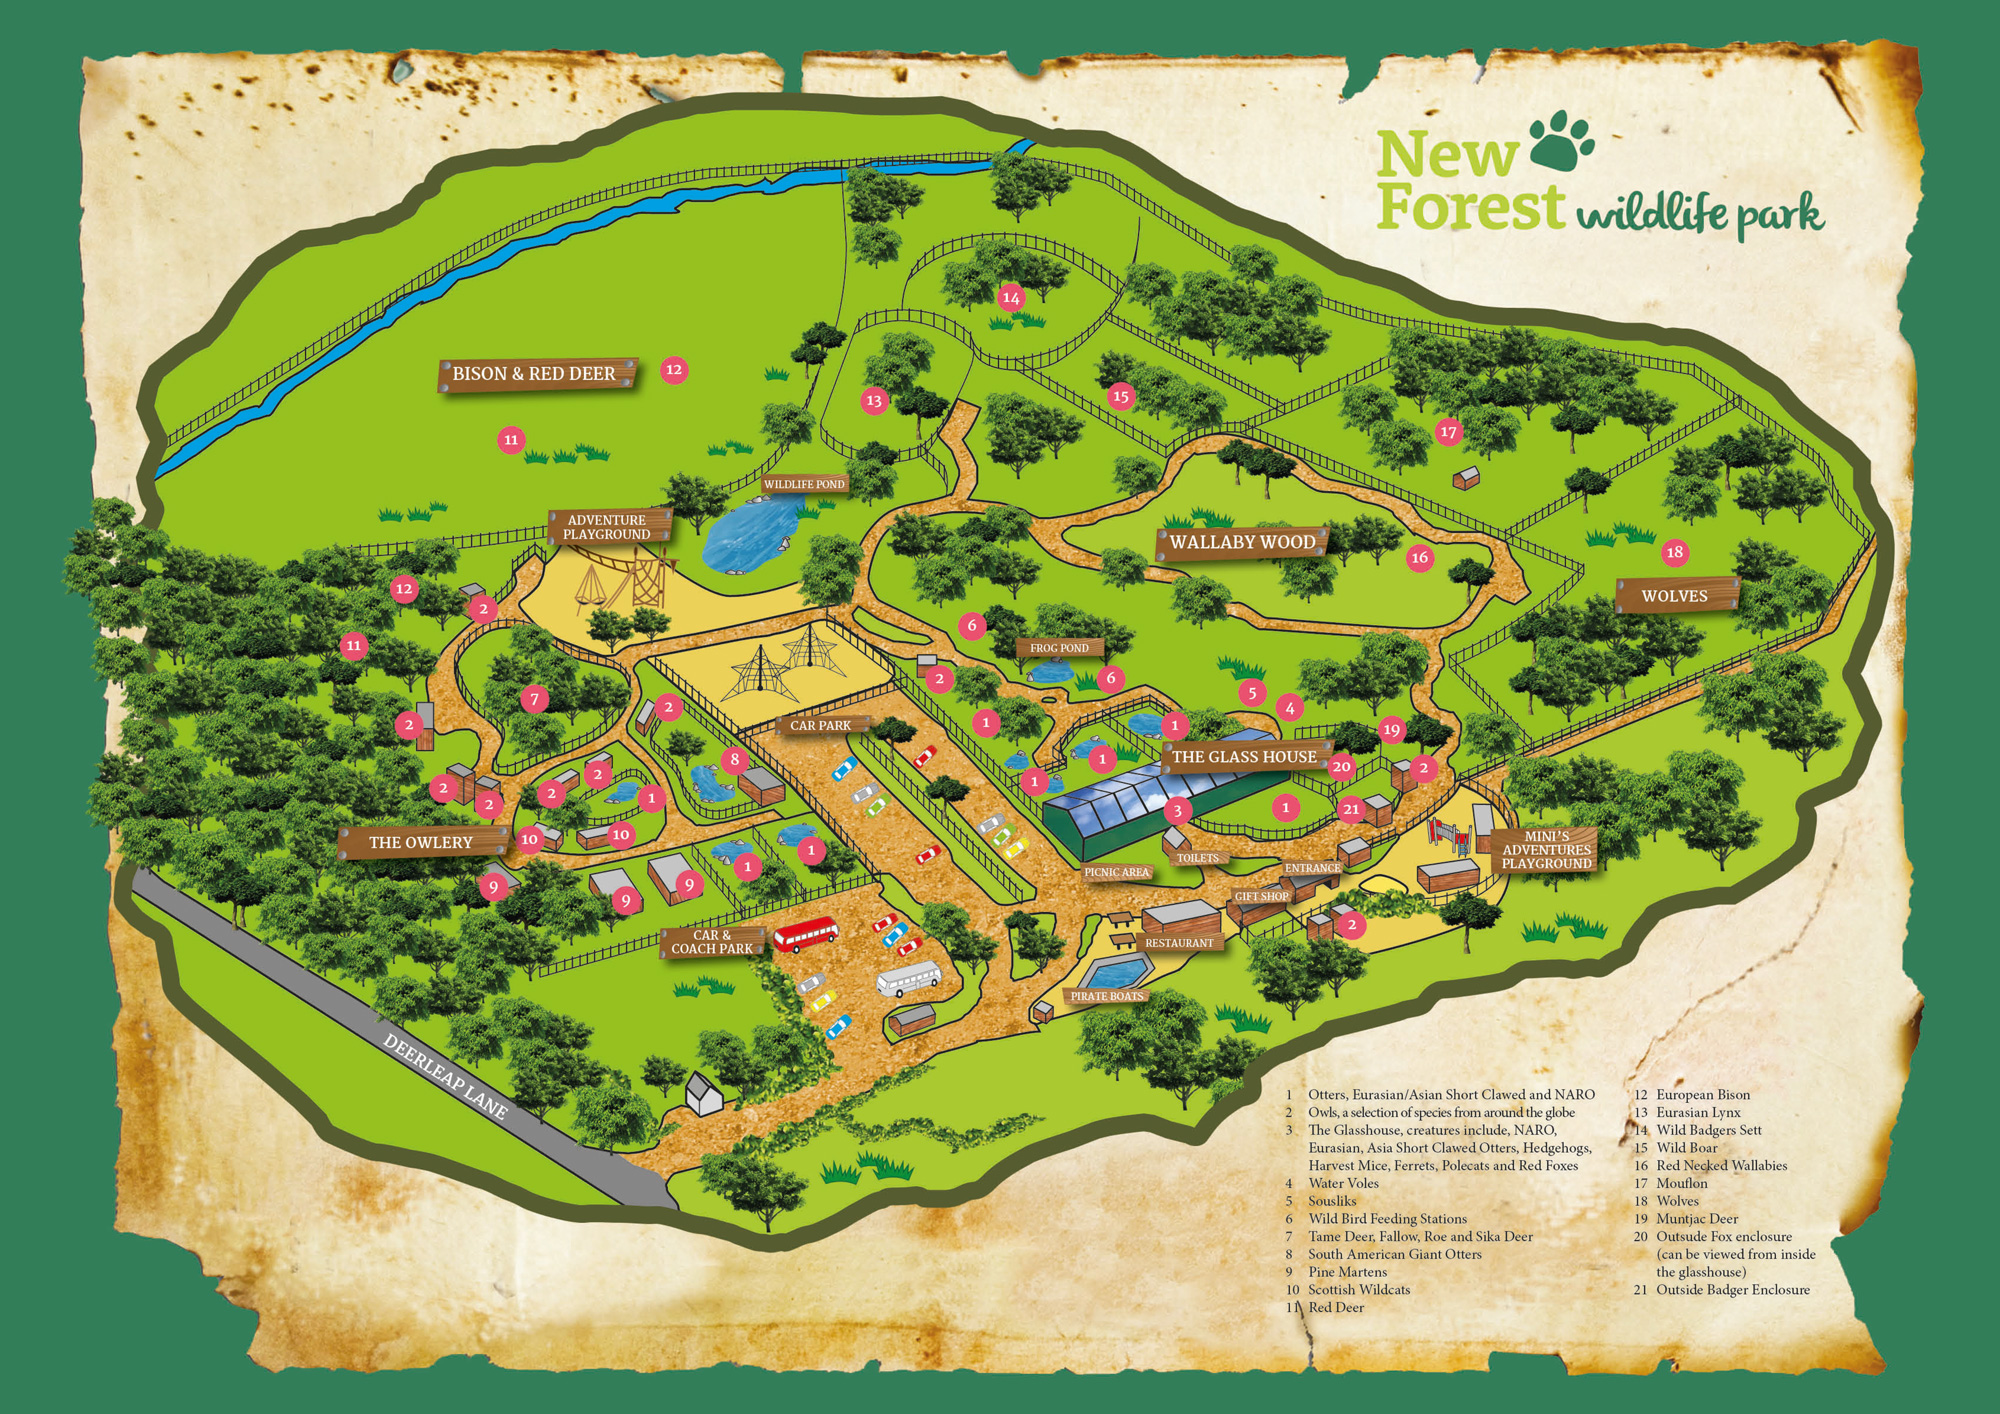 Map Of Uk Hampshire.The Park Map New Forest Wildlife Park